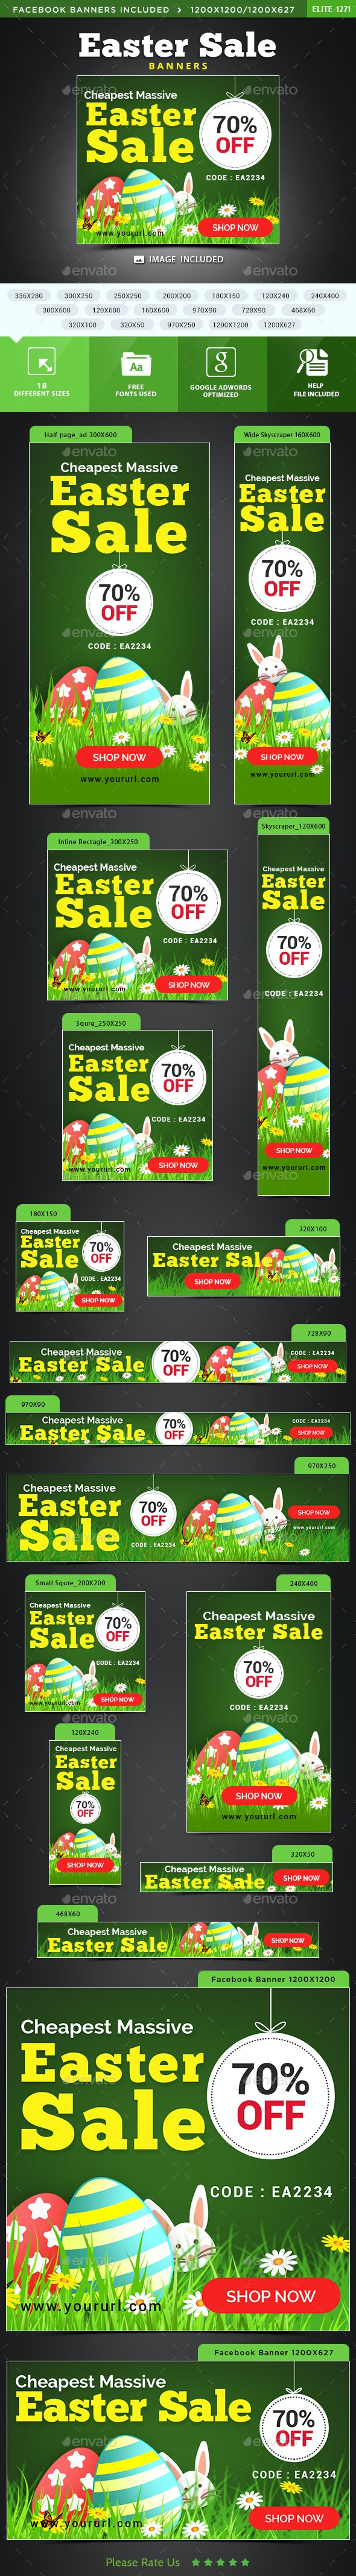 Easter Sale Banners - Banners & Ads Web Elements